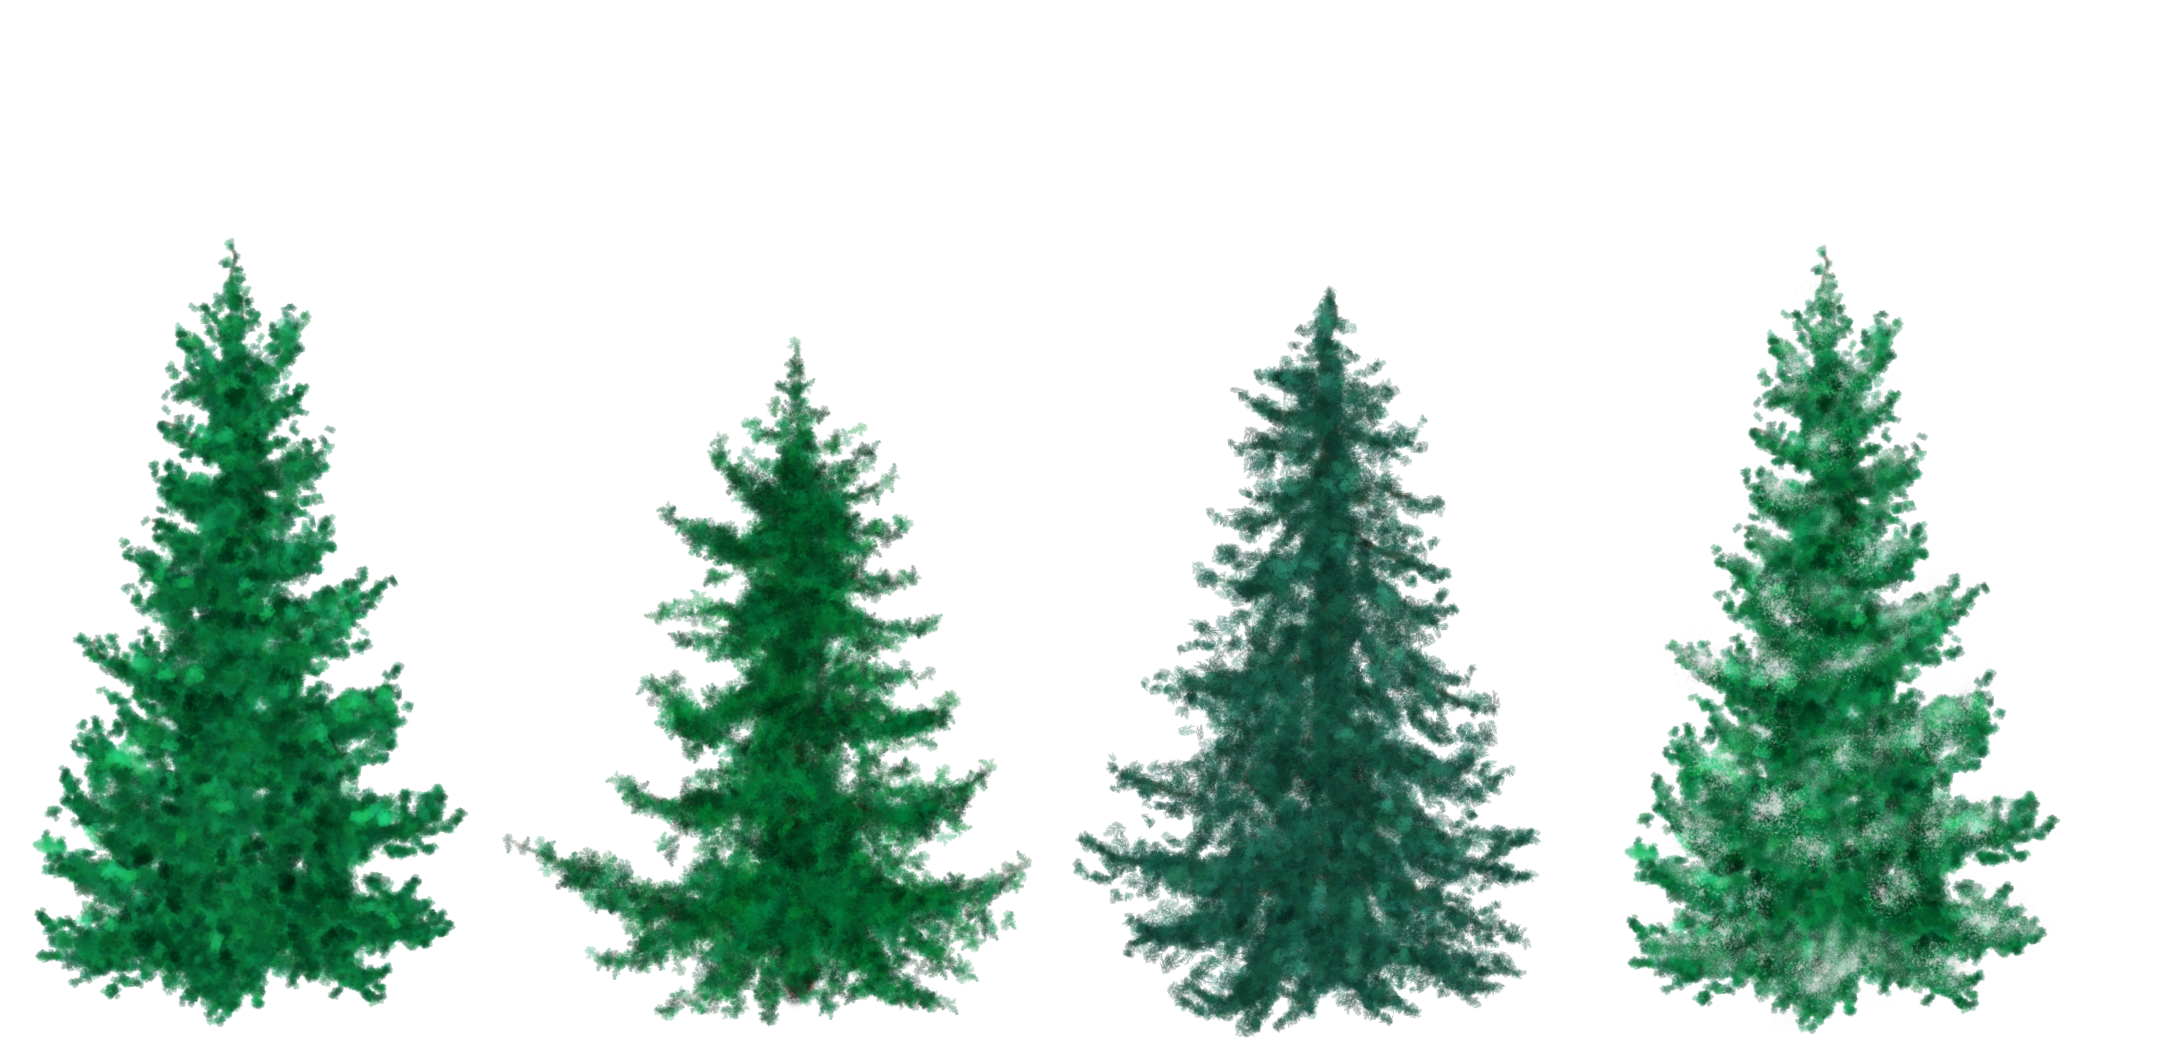 free painted christmas trees by silverbeam free painted christmas trees by silverbeam - Free Christmas Trees